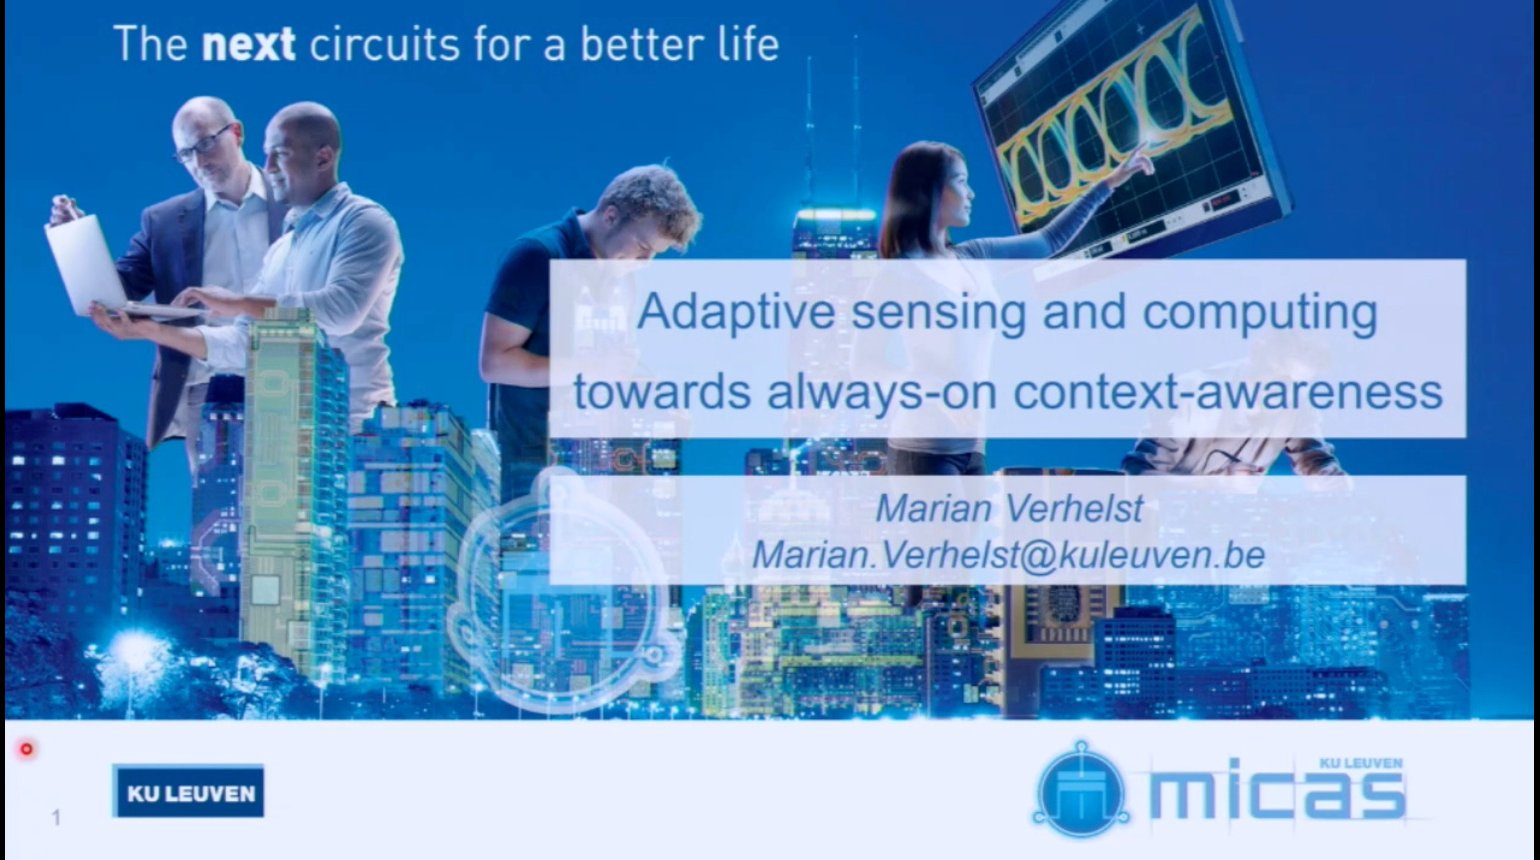 Adaptive sensing and computing towards always-on context-awareness Video